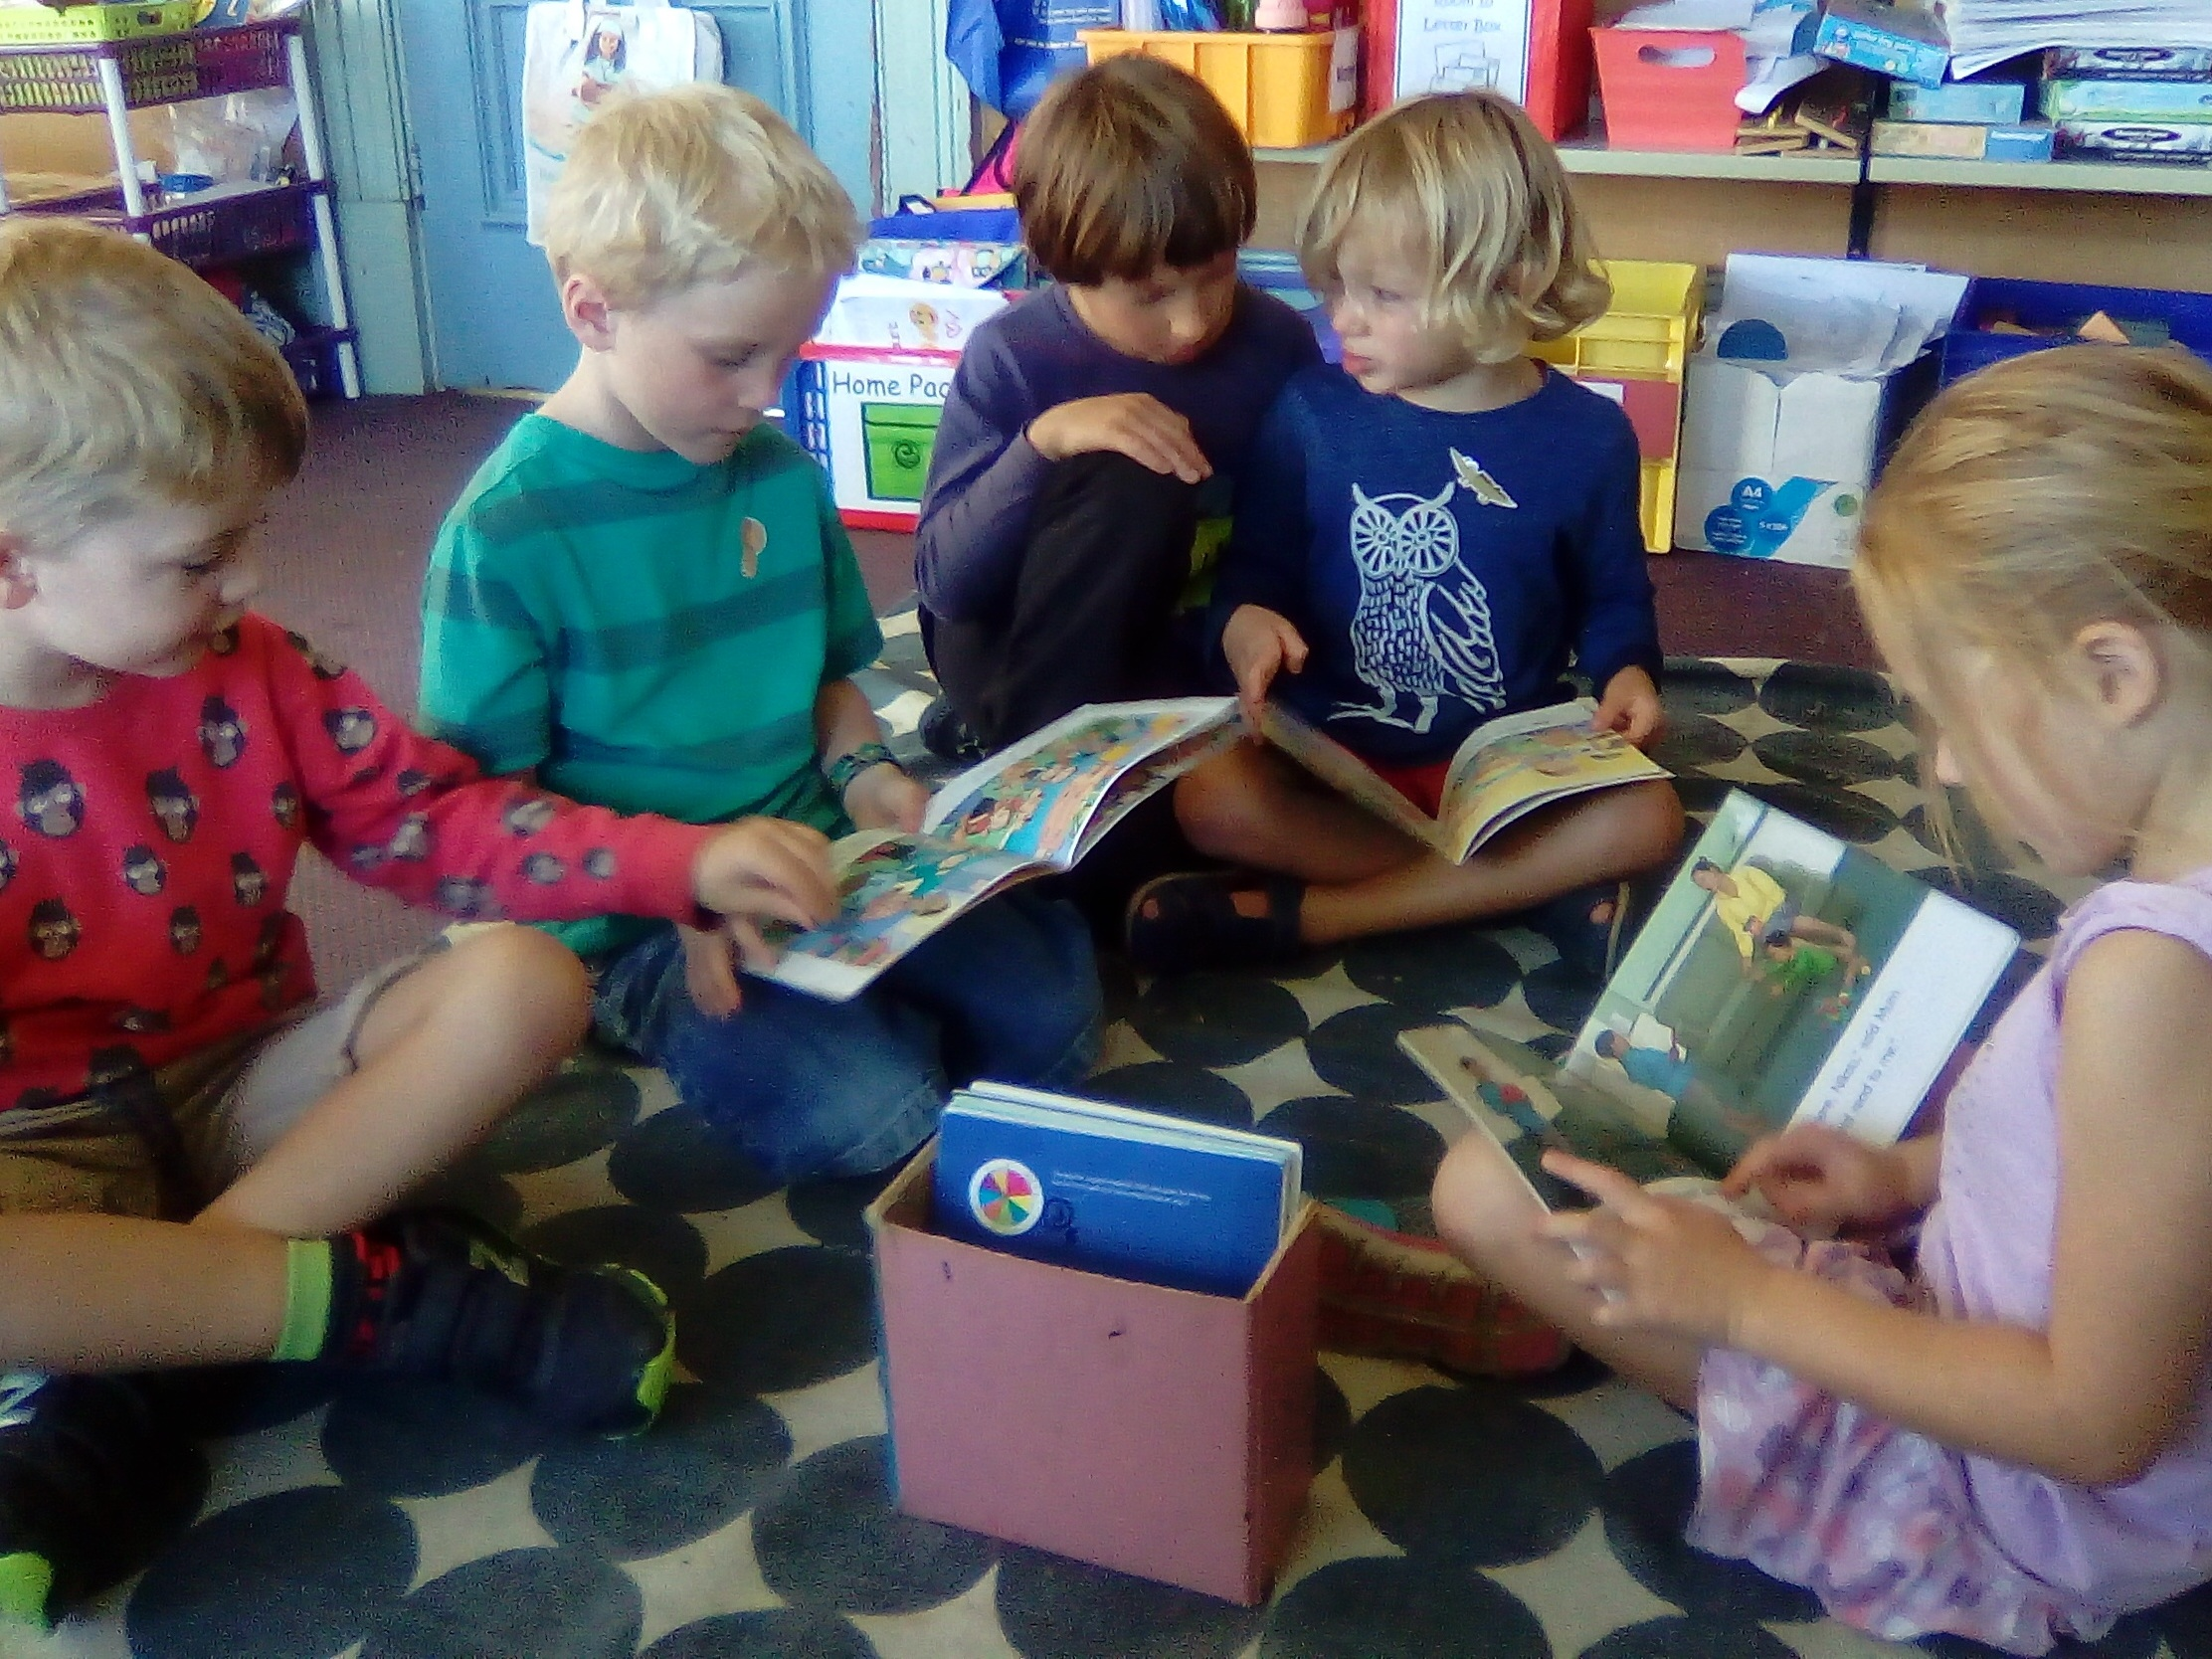 Caring - ManaakitangaOur tamariki support one another in their learning and in the school community. They demonstrate tuakana-teina, with older learners supporting younger. They speak kindly and politely. They watch out for one another and invite others to join in.